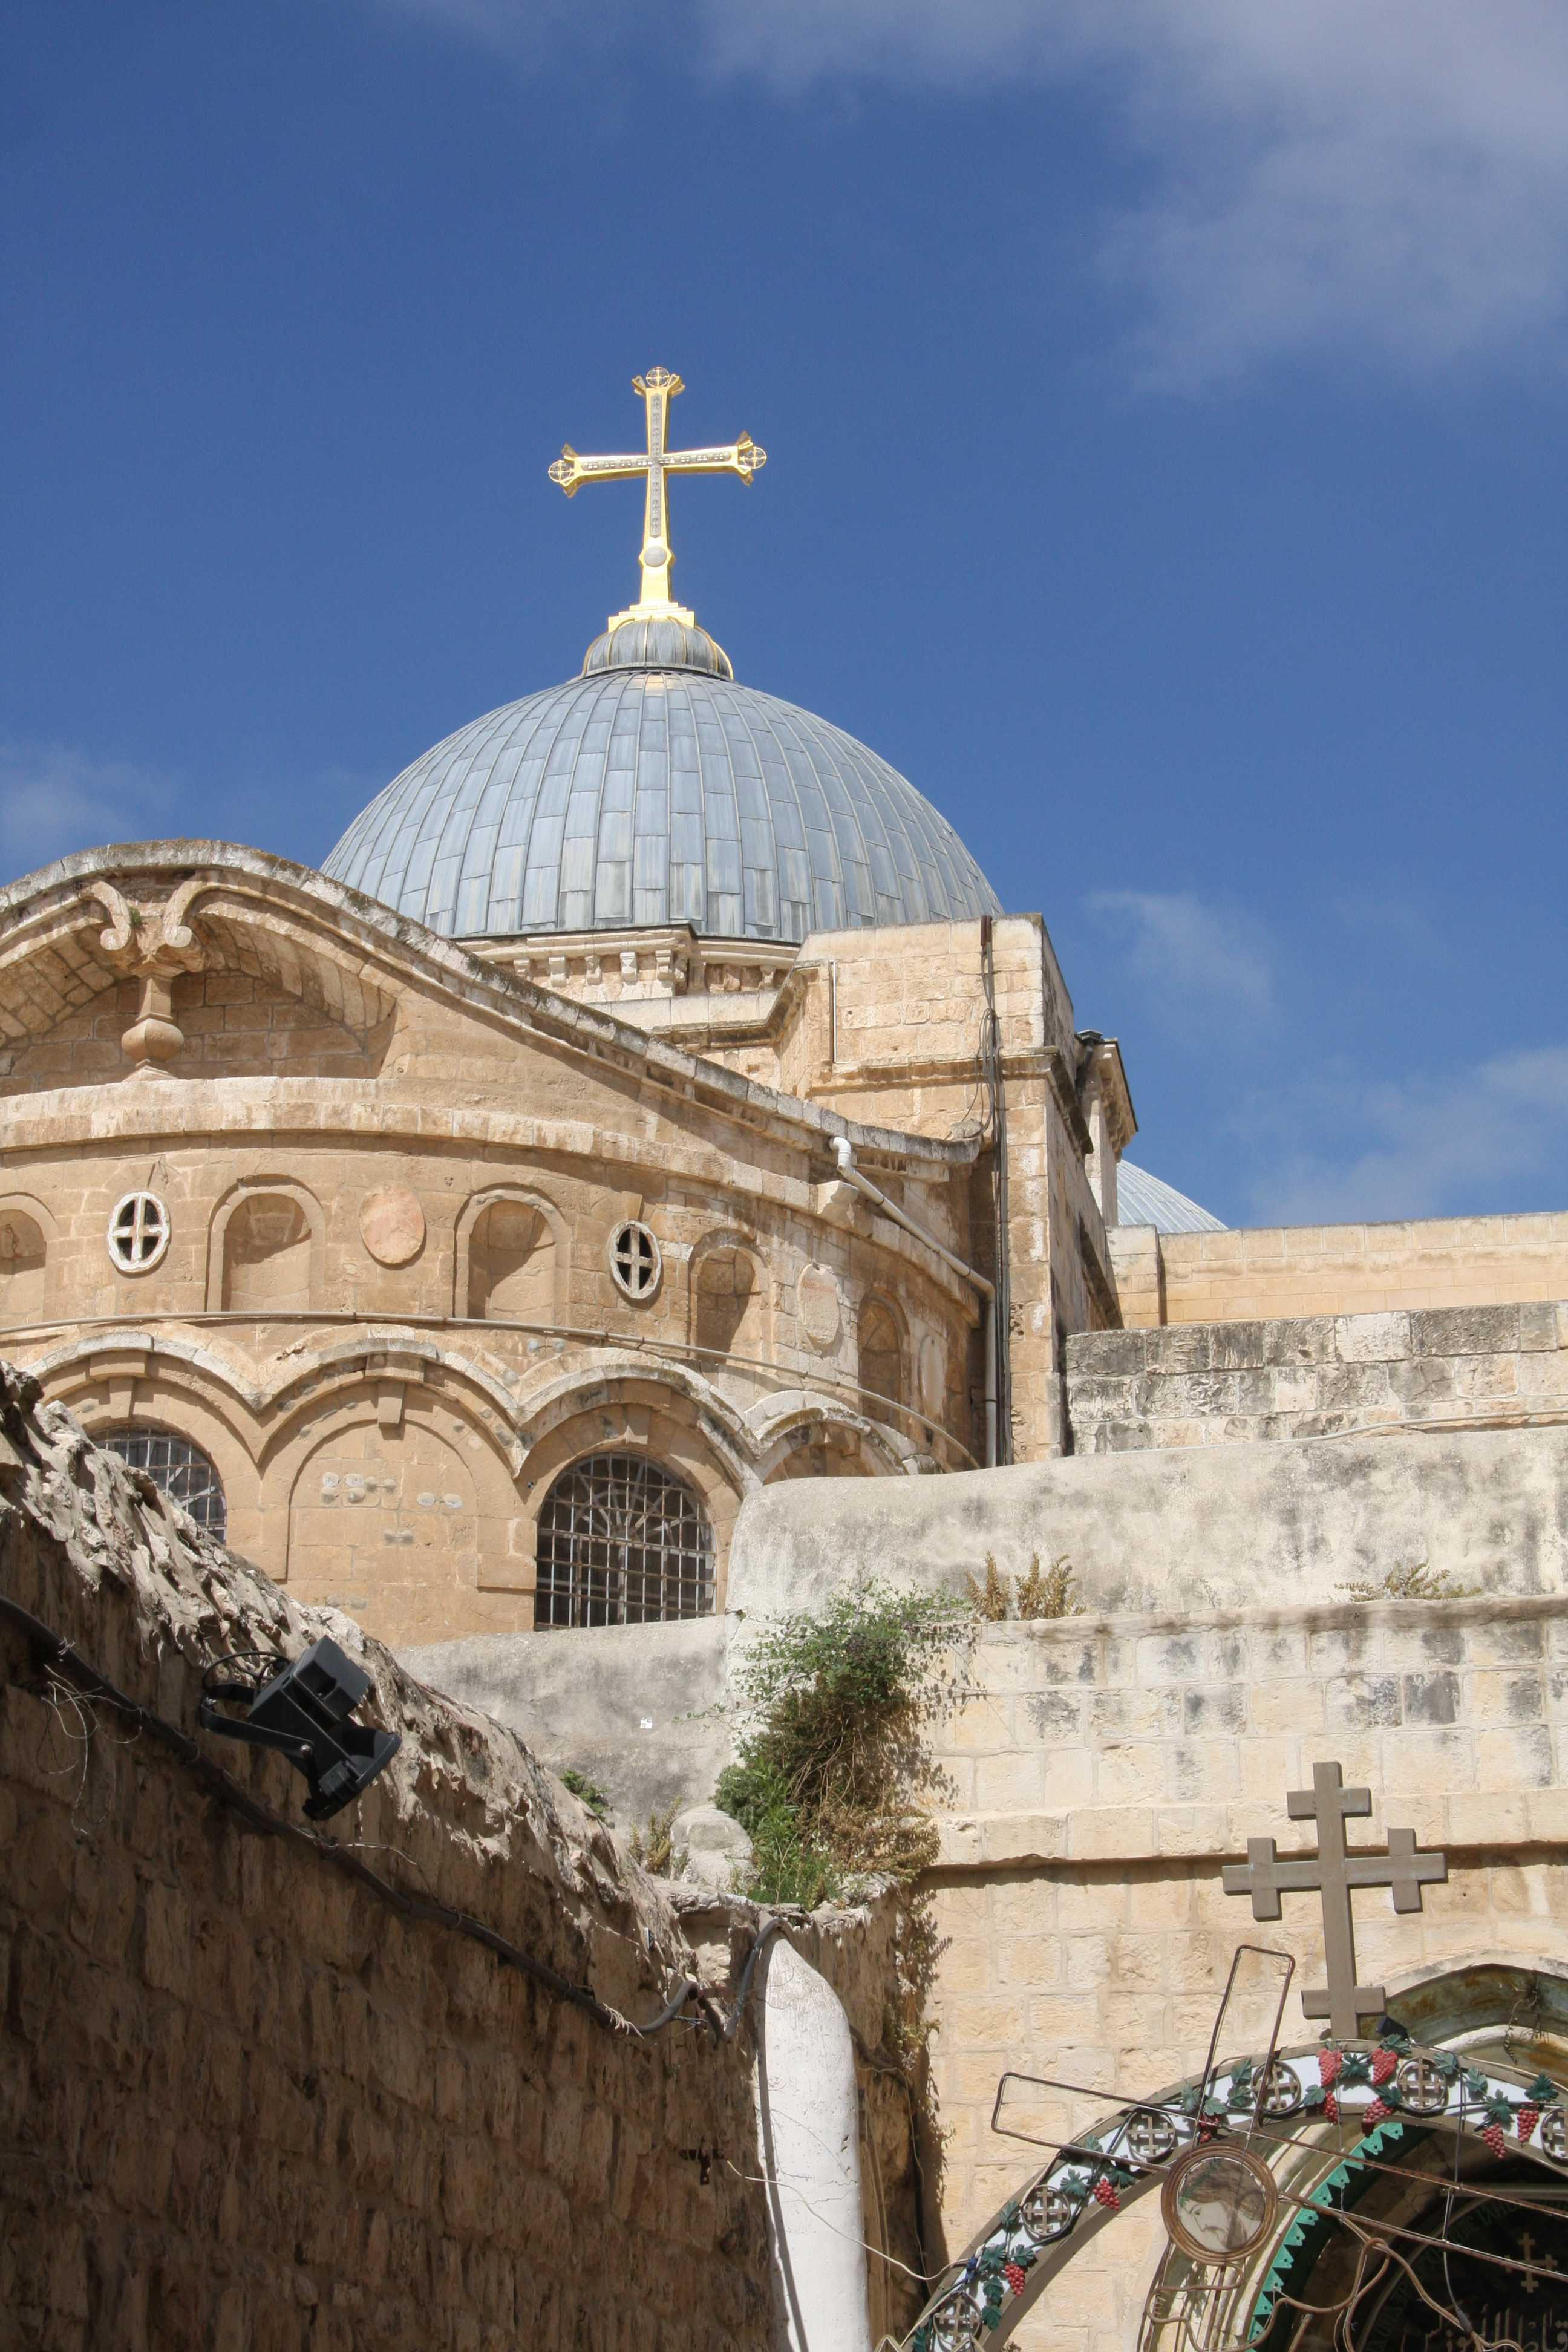 The church marking the end of the Via Dolorosa where Jesus died